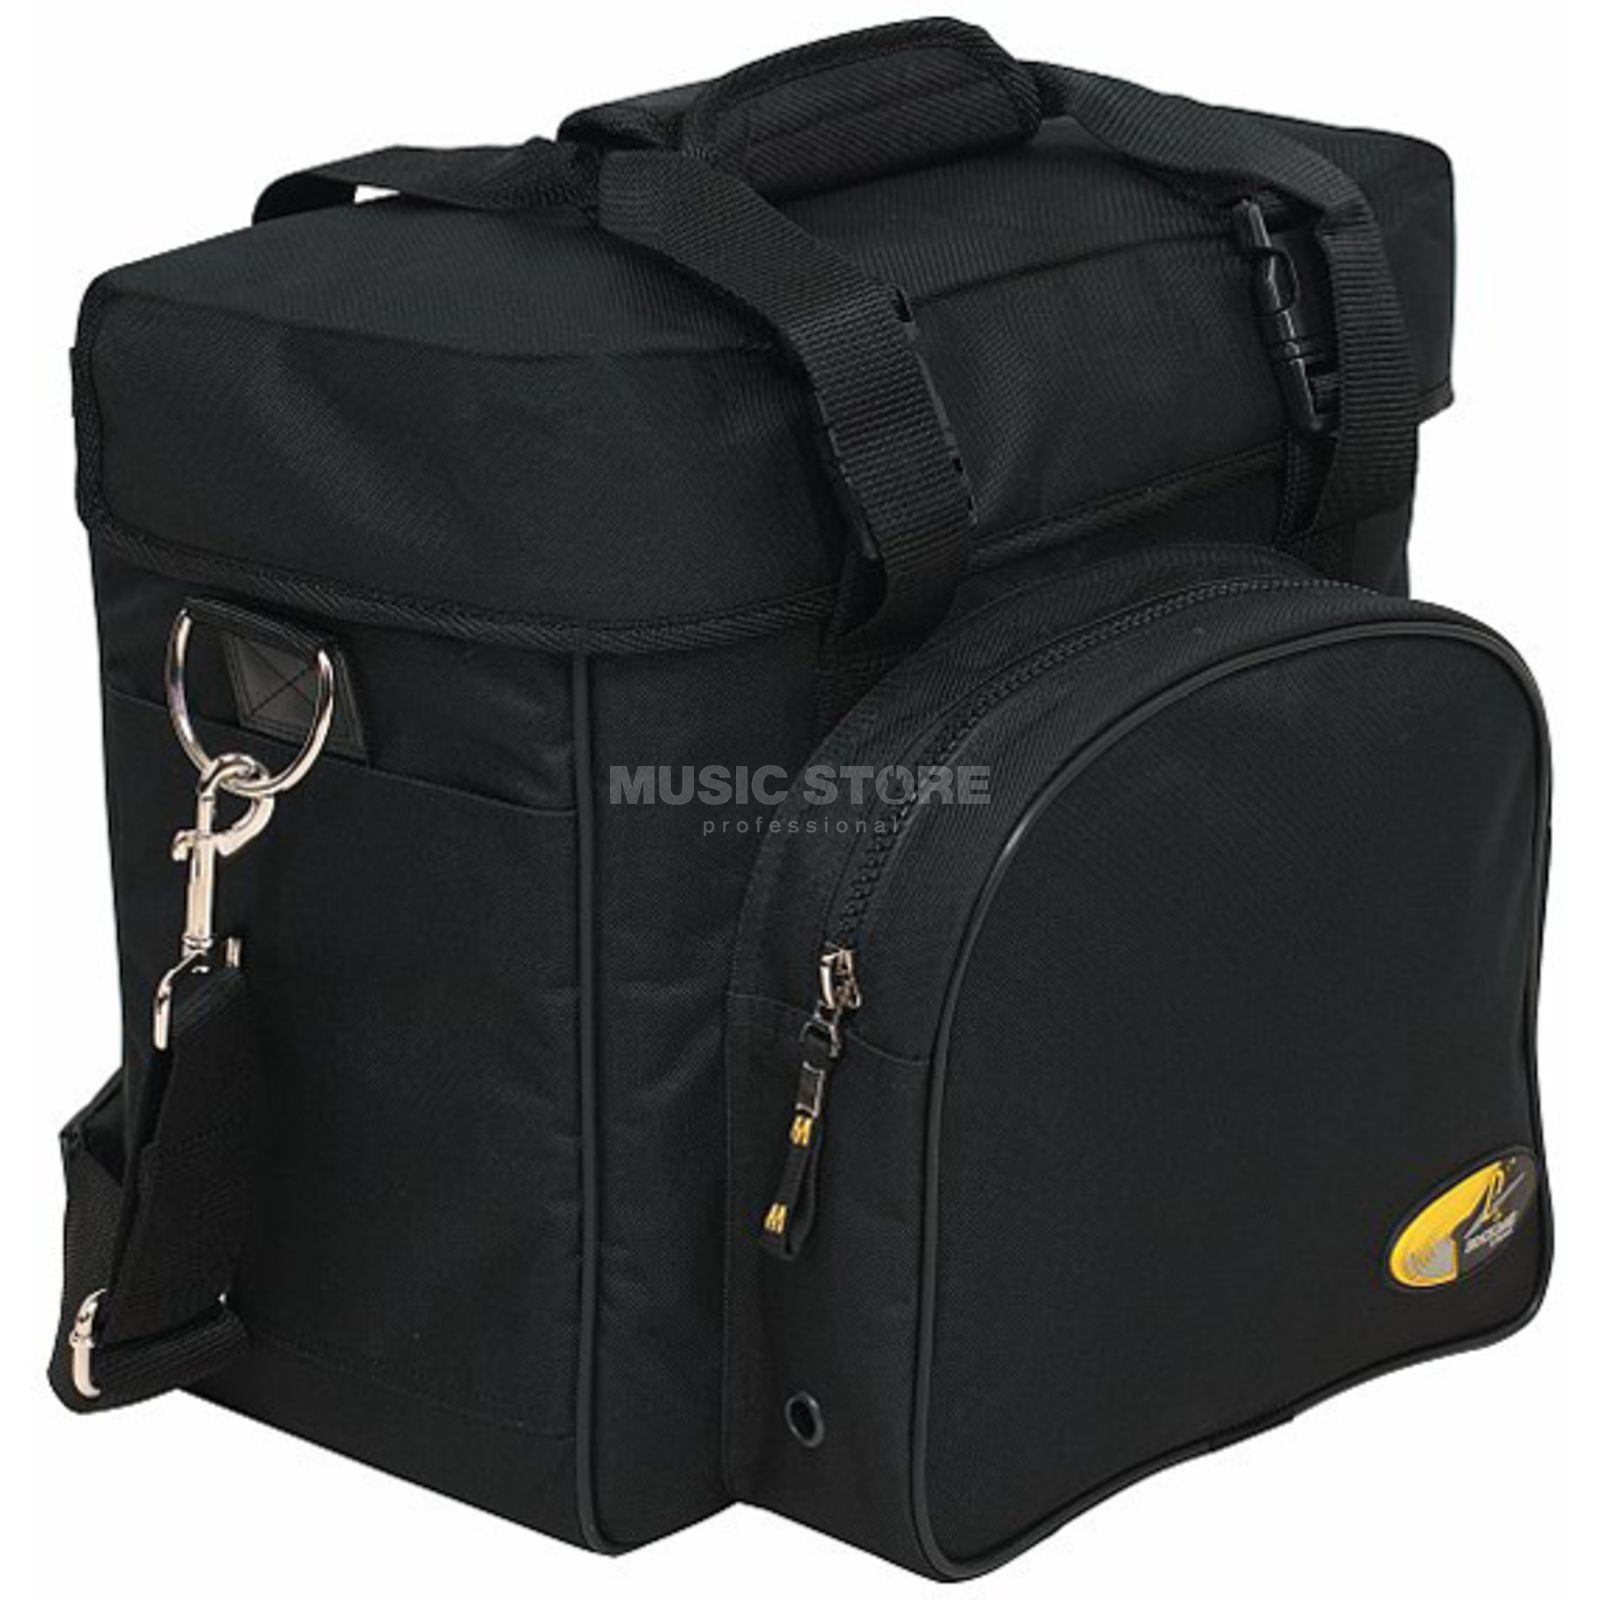 Rockbag DJ Record Bag RB 27110 B for 20 LPs, black Product Image